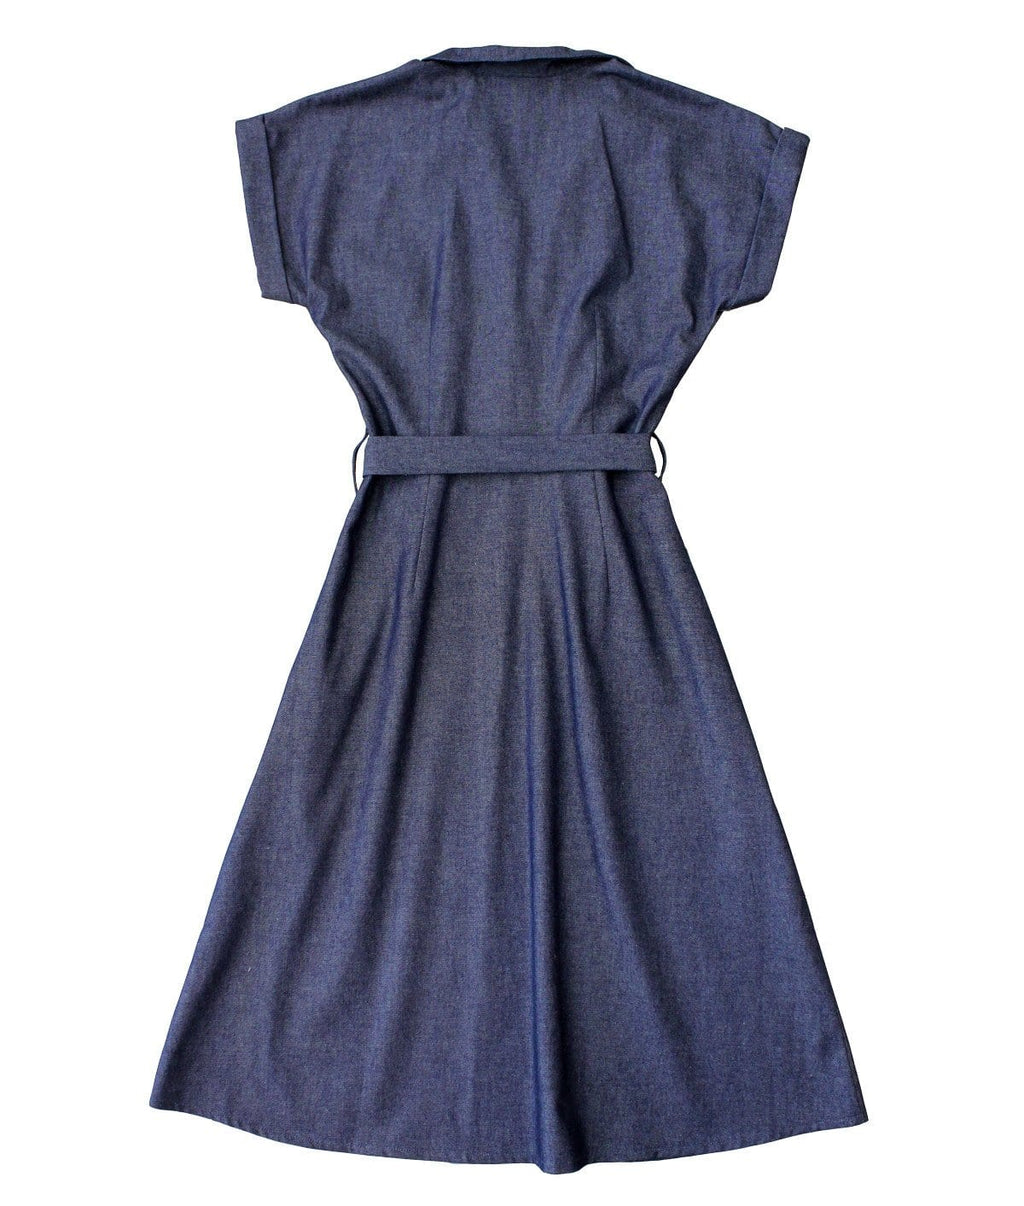 Dragstar Shirt Dress - Dark Denim